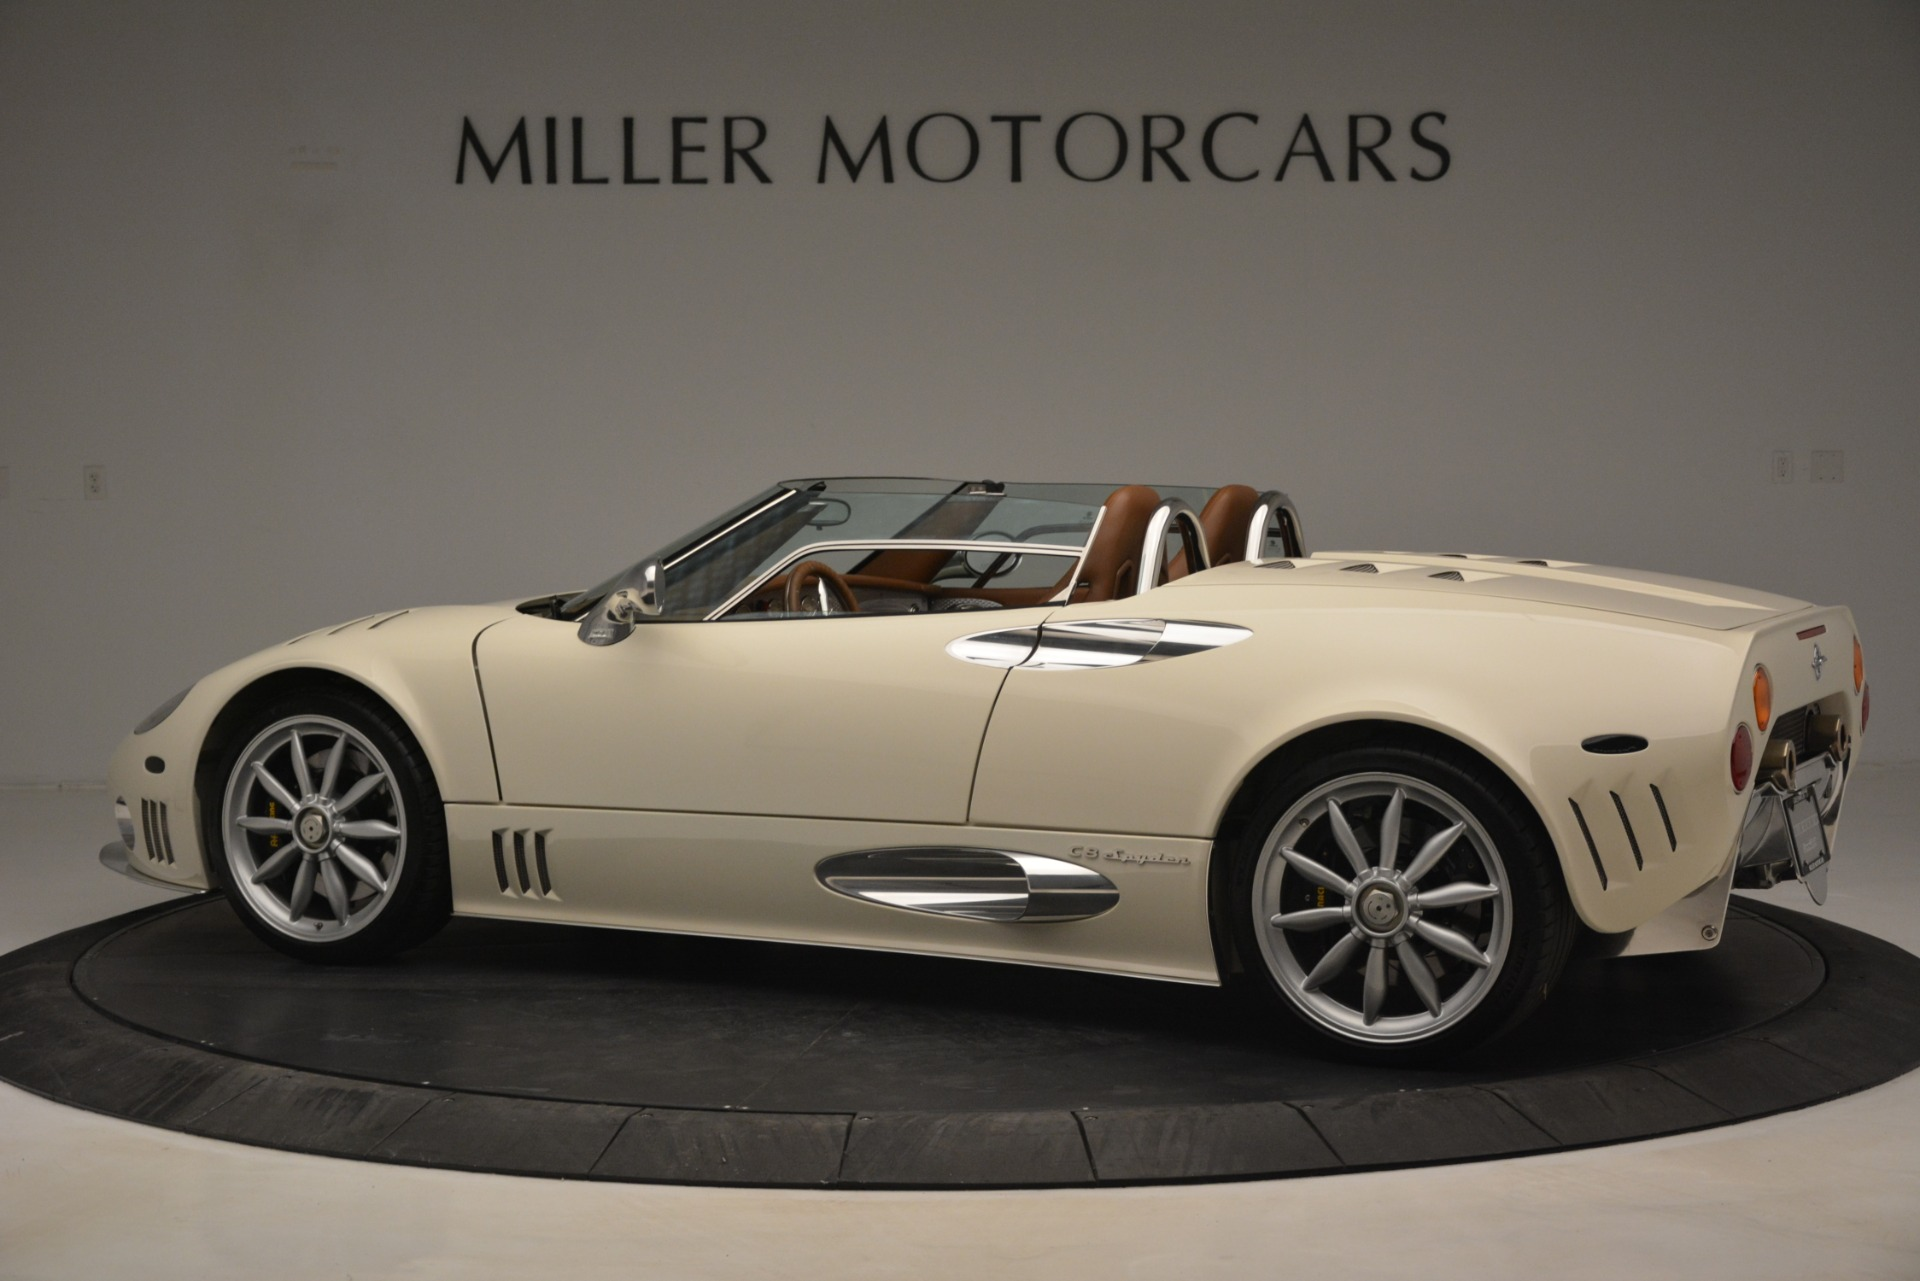 Used 2006 Spyker C8 Spyder  For Sale In Westport, CT 1661_p4